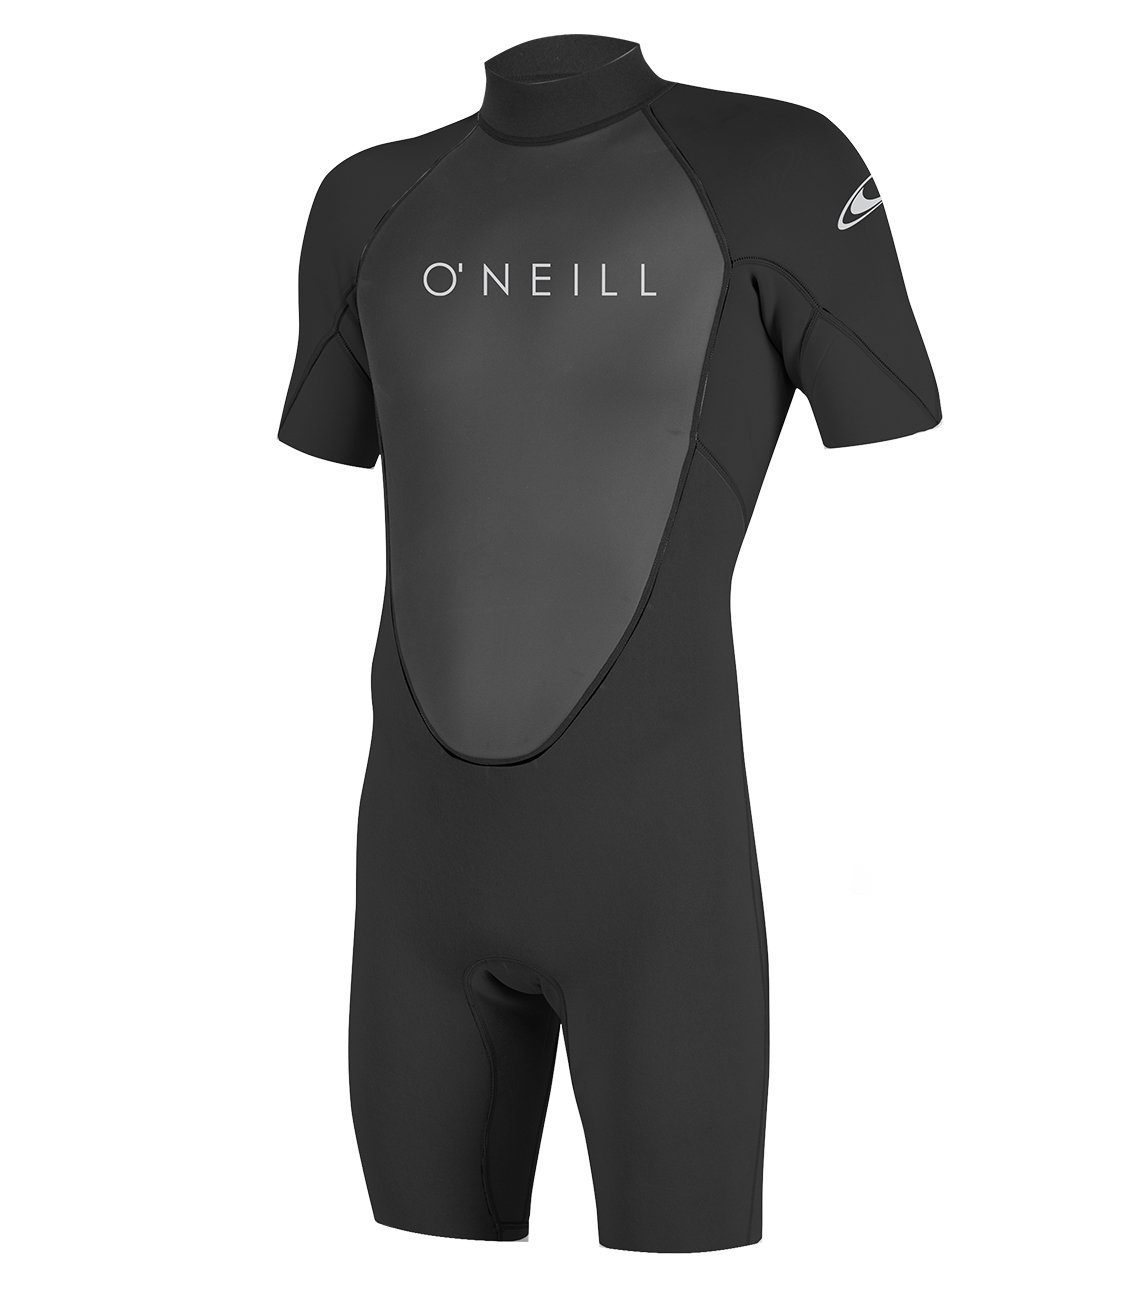 O'Neill Men's Reactor-2 2mm Back Zip Short Sleeve Spring Wetsuit, Black, Small by O'Neill Wetsuits